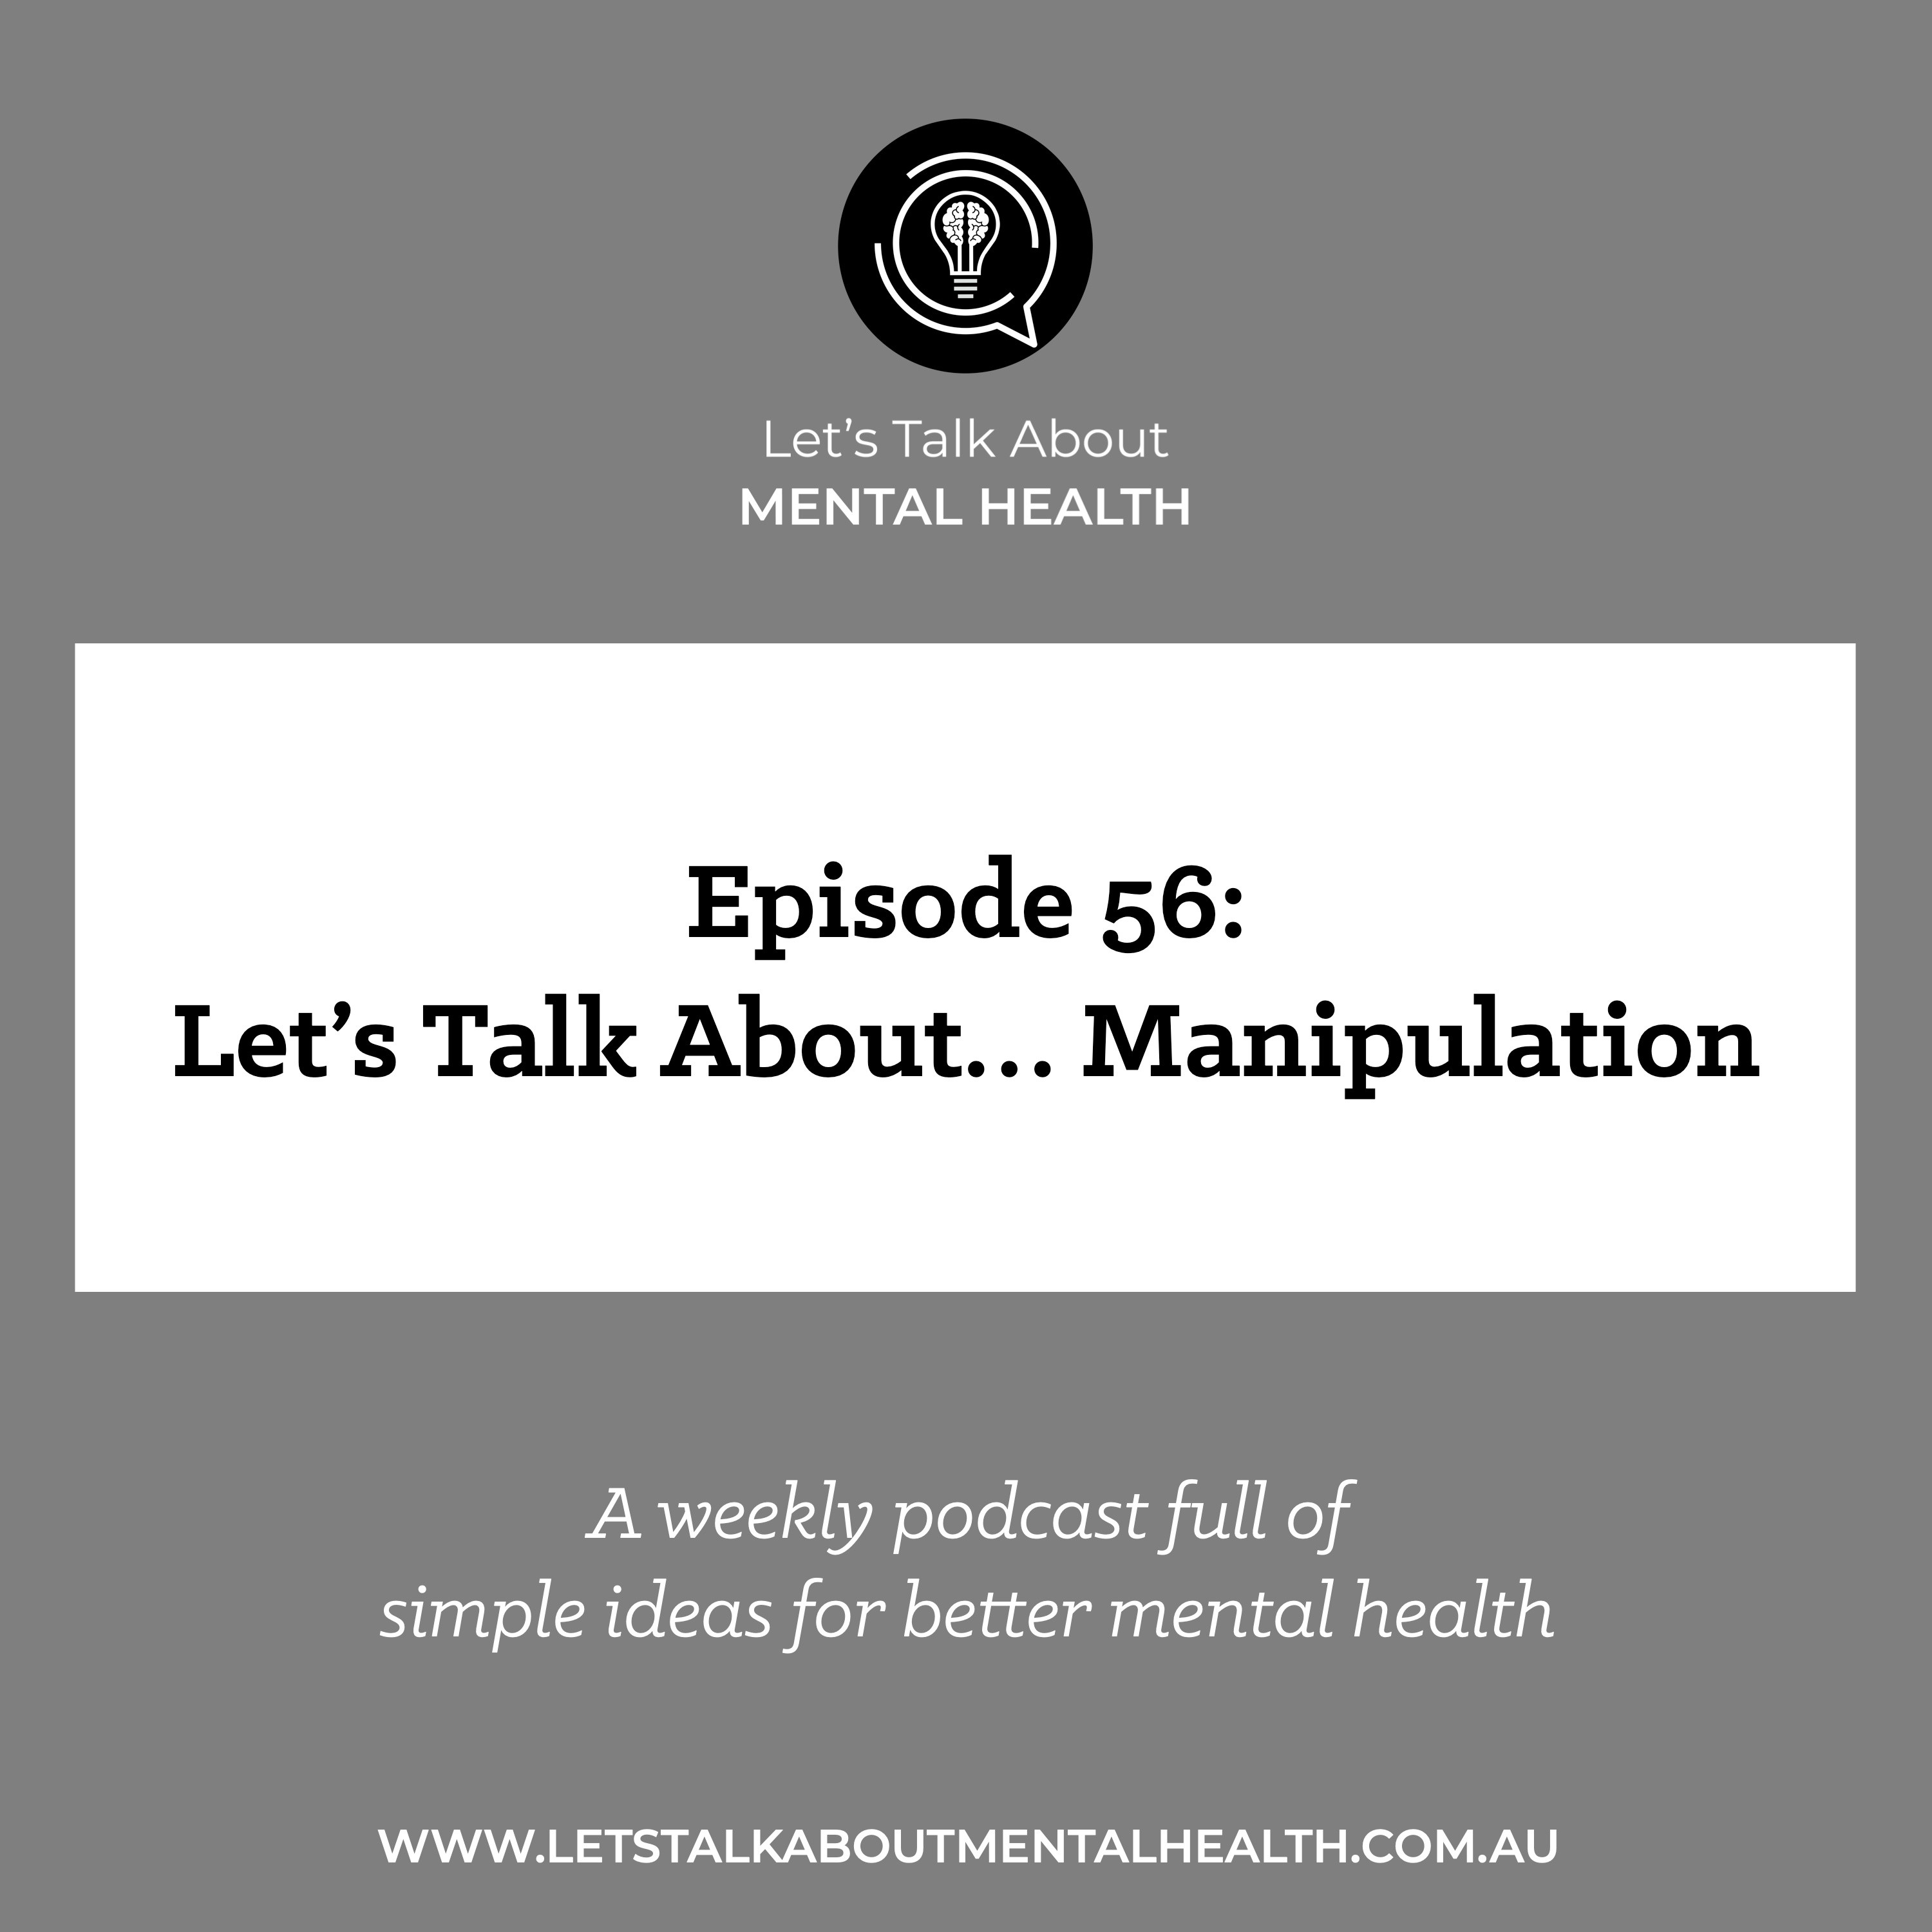 Let's Talk About Mental Health - Let's Talk About... Manipulation